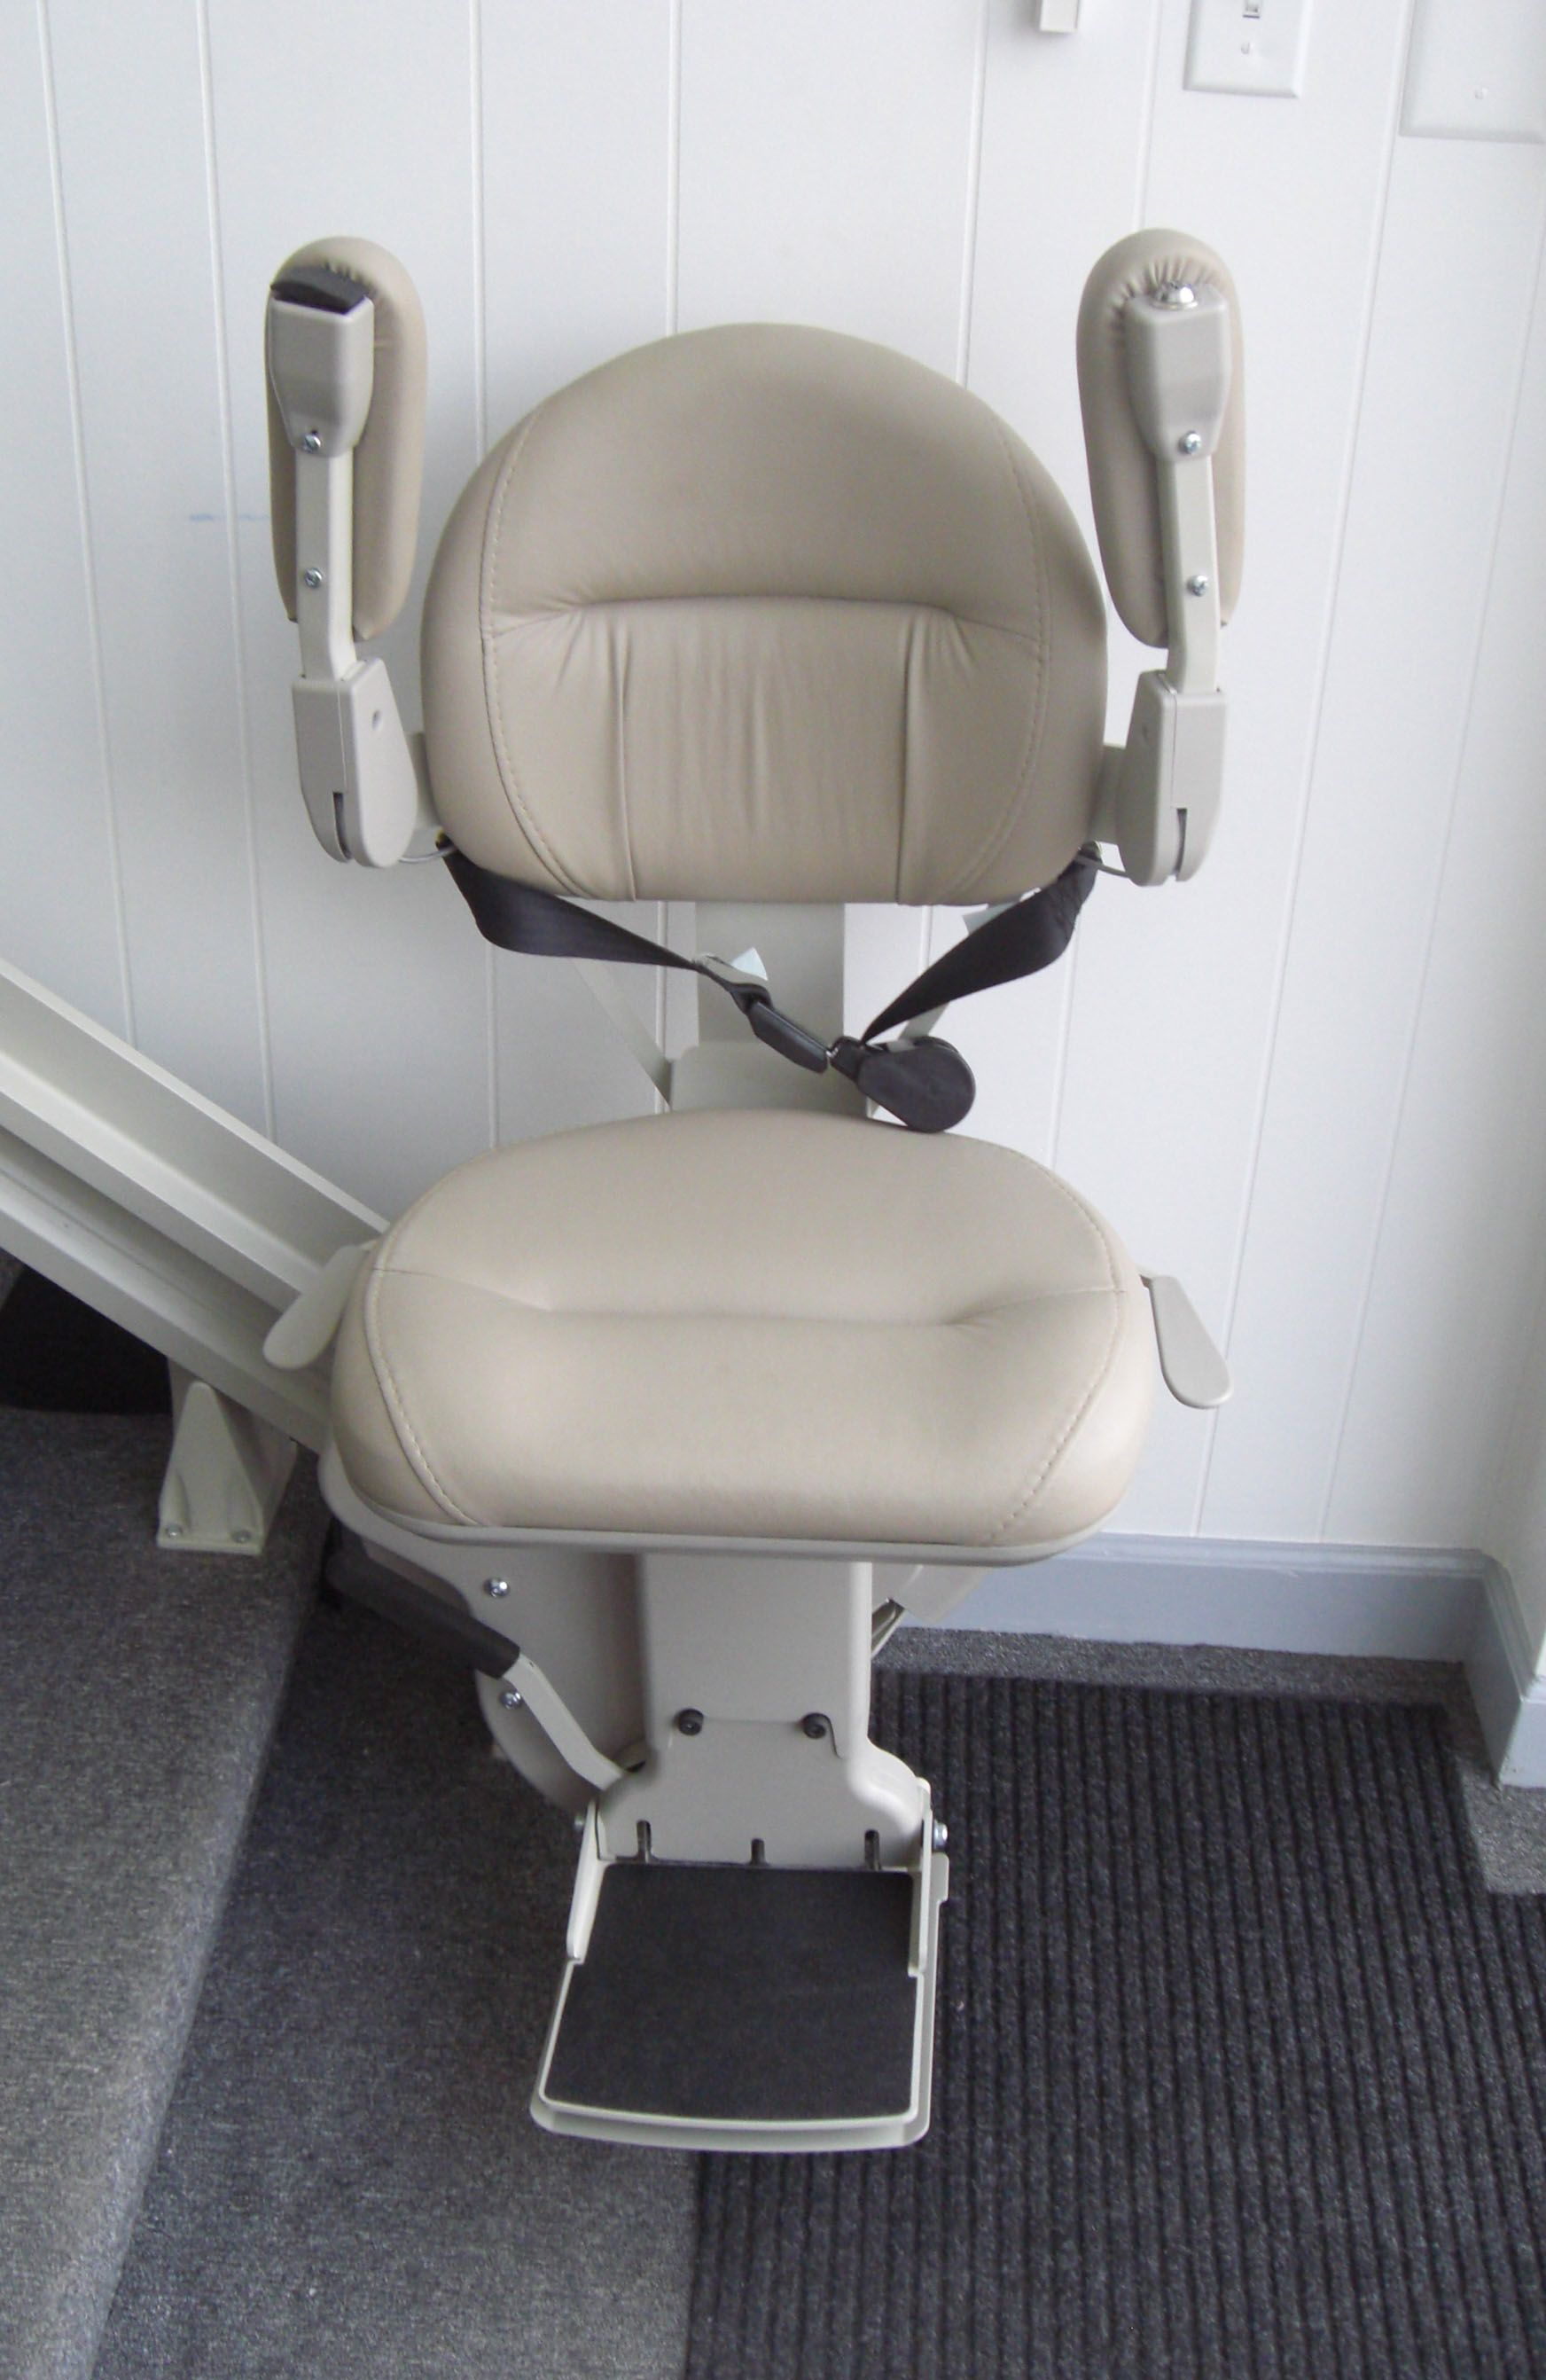 Straight Stair Lift in Dearborn